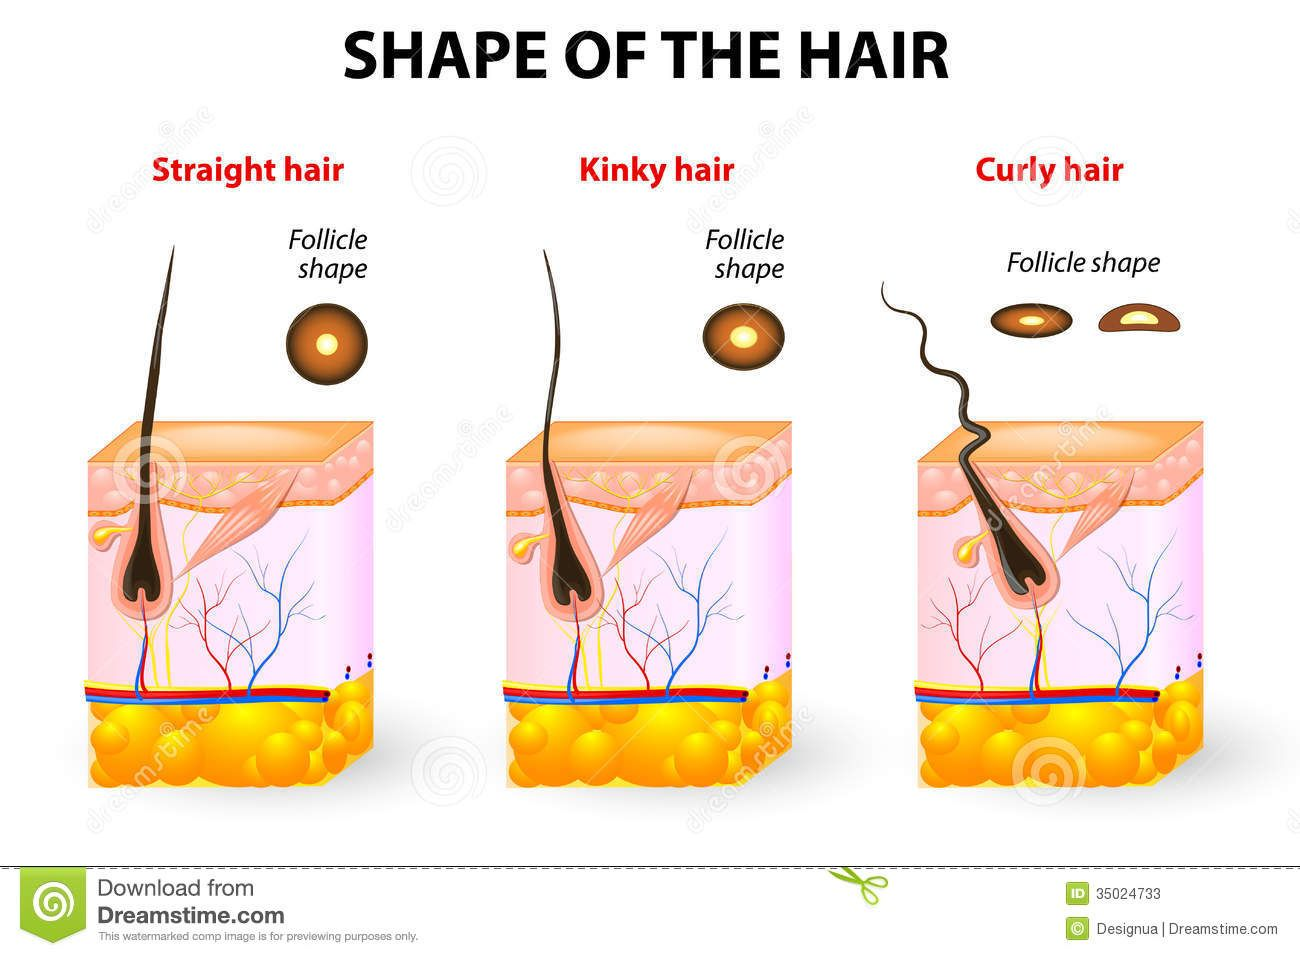 Swell Curly Vs Straight Hair Microscope Google Search Salon Hairstyle Inspiration Daily Dogsangcom